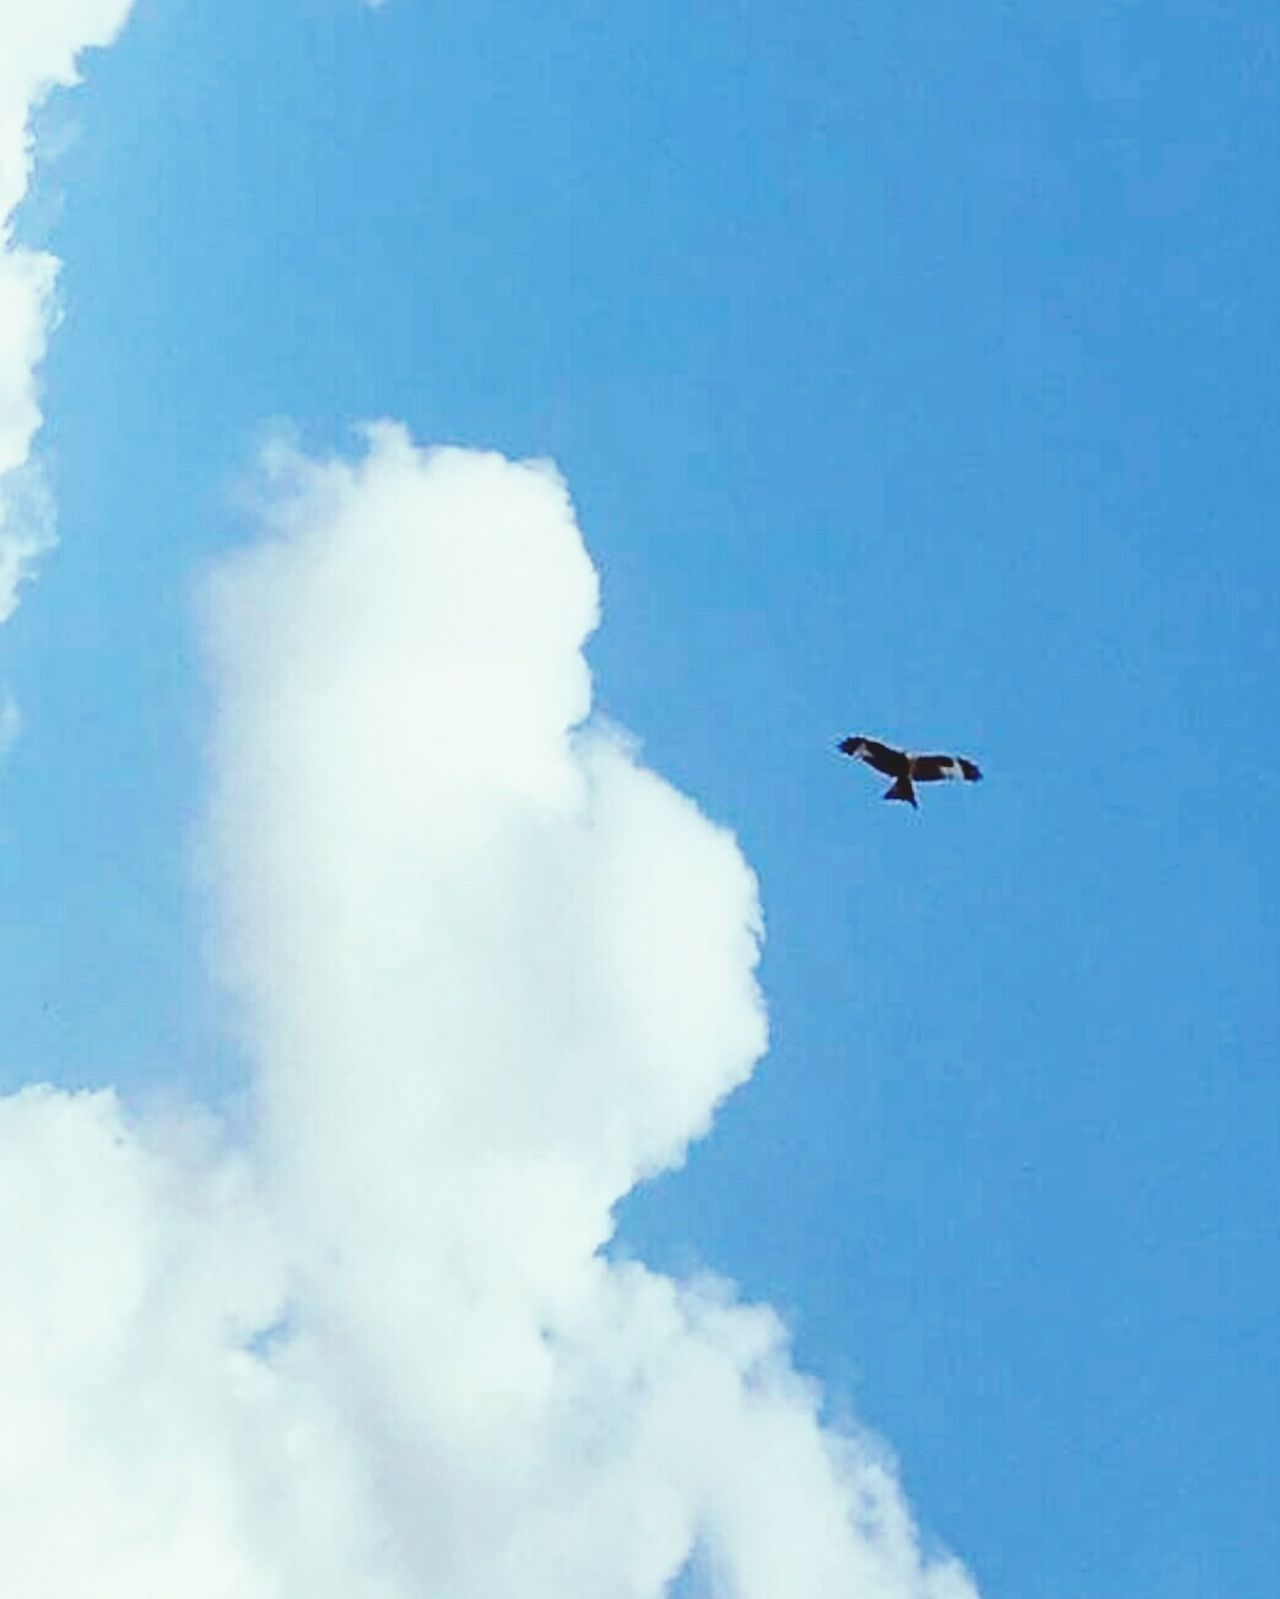 Flying Mid-air Day Sky Blue Low Angle View Outdoors Bird Nature Animals In The Wild No People Airplane Airshow Aerobatics